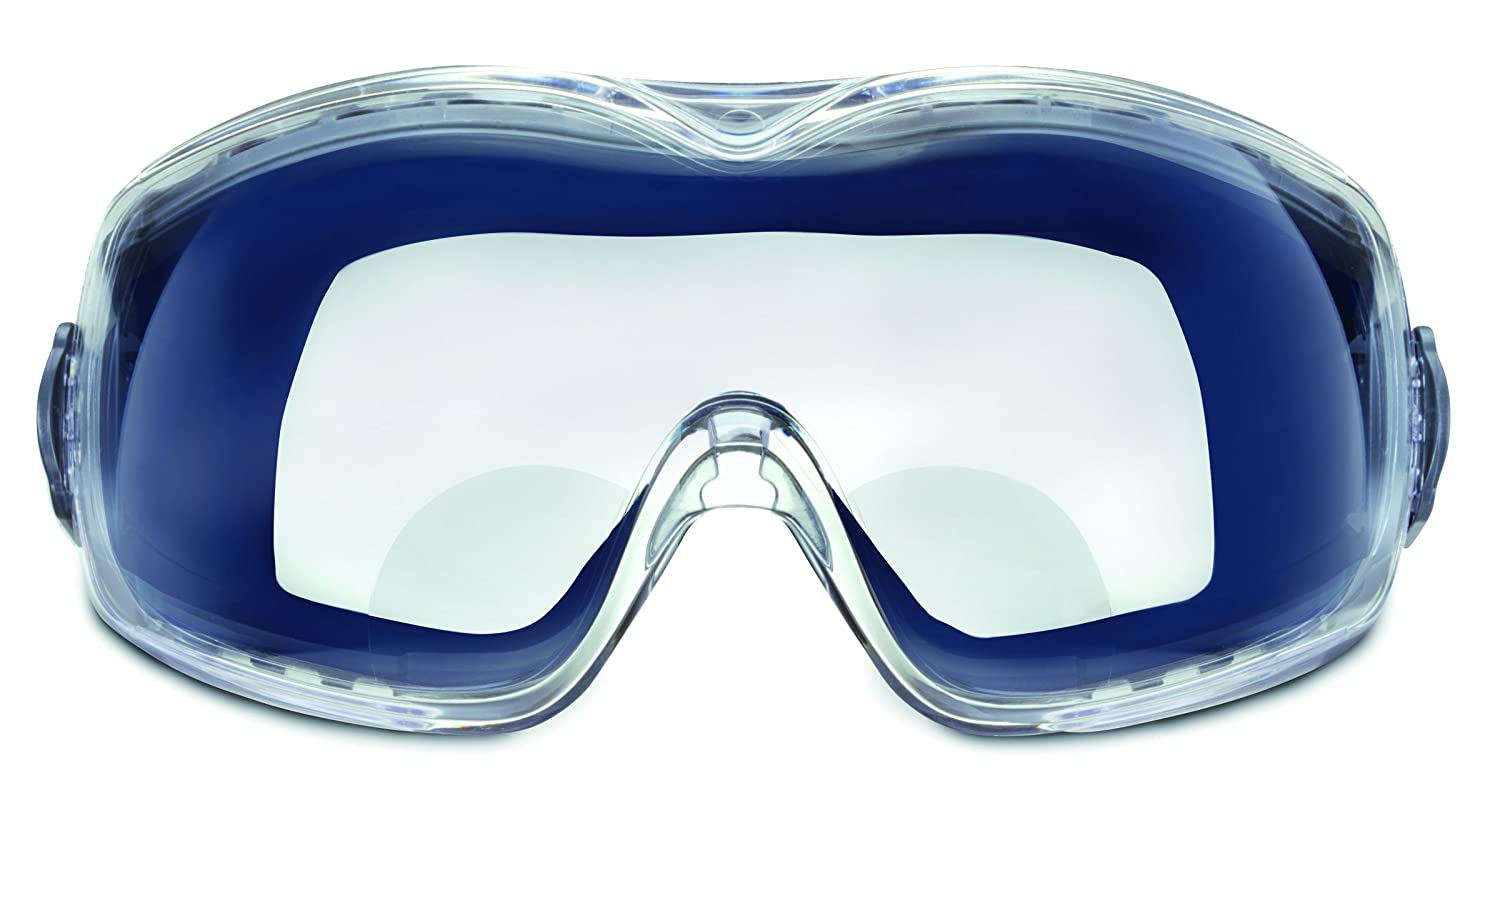 Uvex Stealth Reading Magnifier Goggles with Uvextreme Anti-Fog Lens S3993X